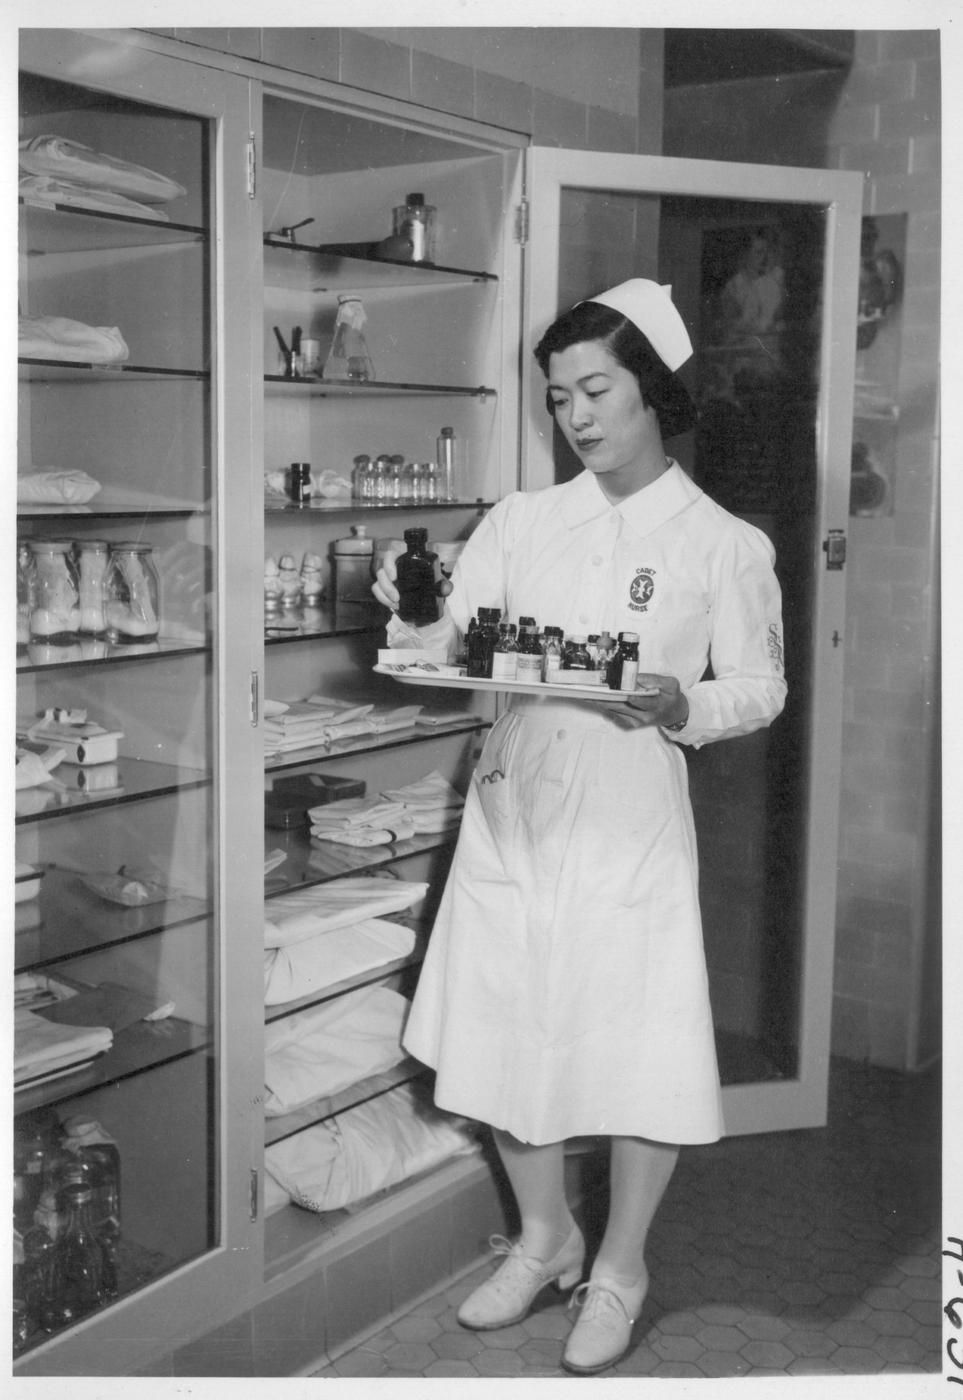 Nurse at the supply closet #nurse